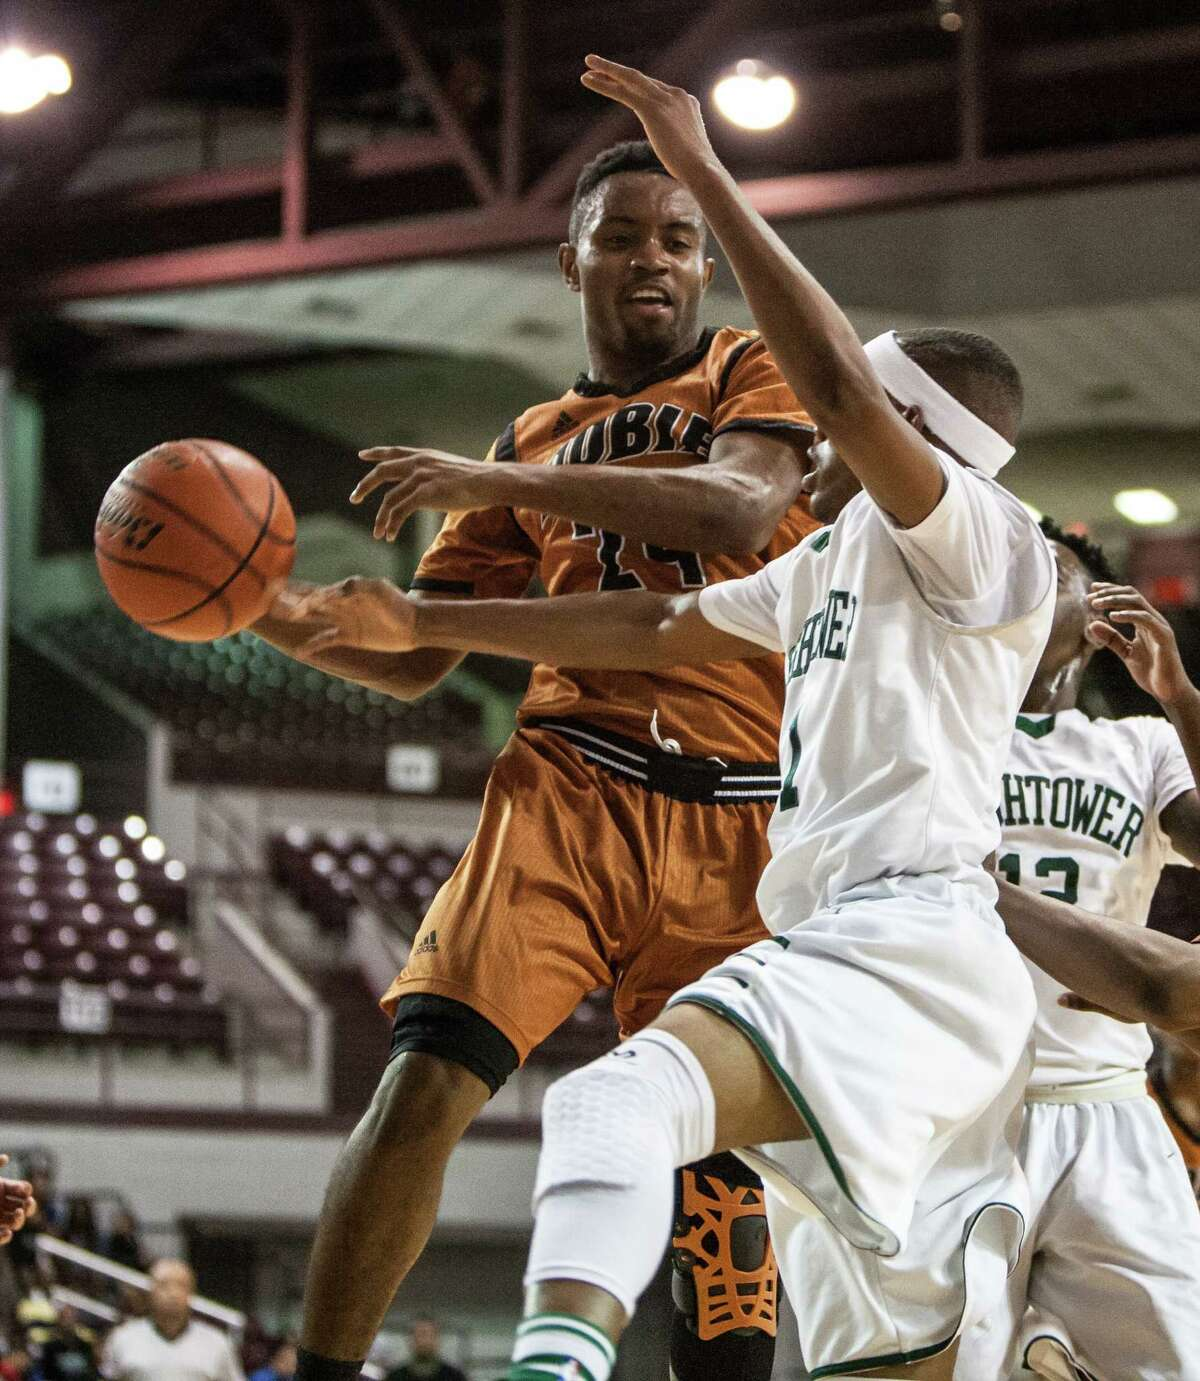 Jason Lester of Dobie grabs a rebound during a game Tuesday March 1, 2016. Hightower played Dobie in a boys basketball playoff game at the Campbell Center.